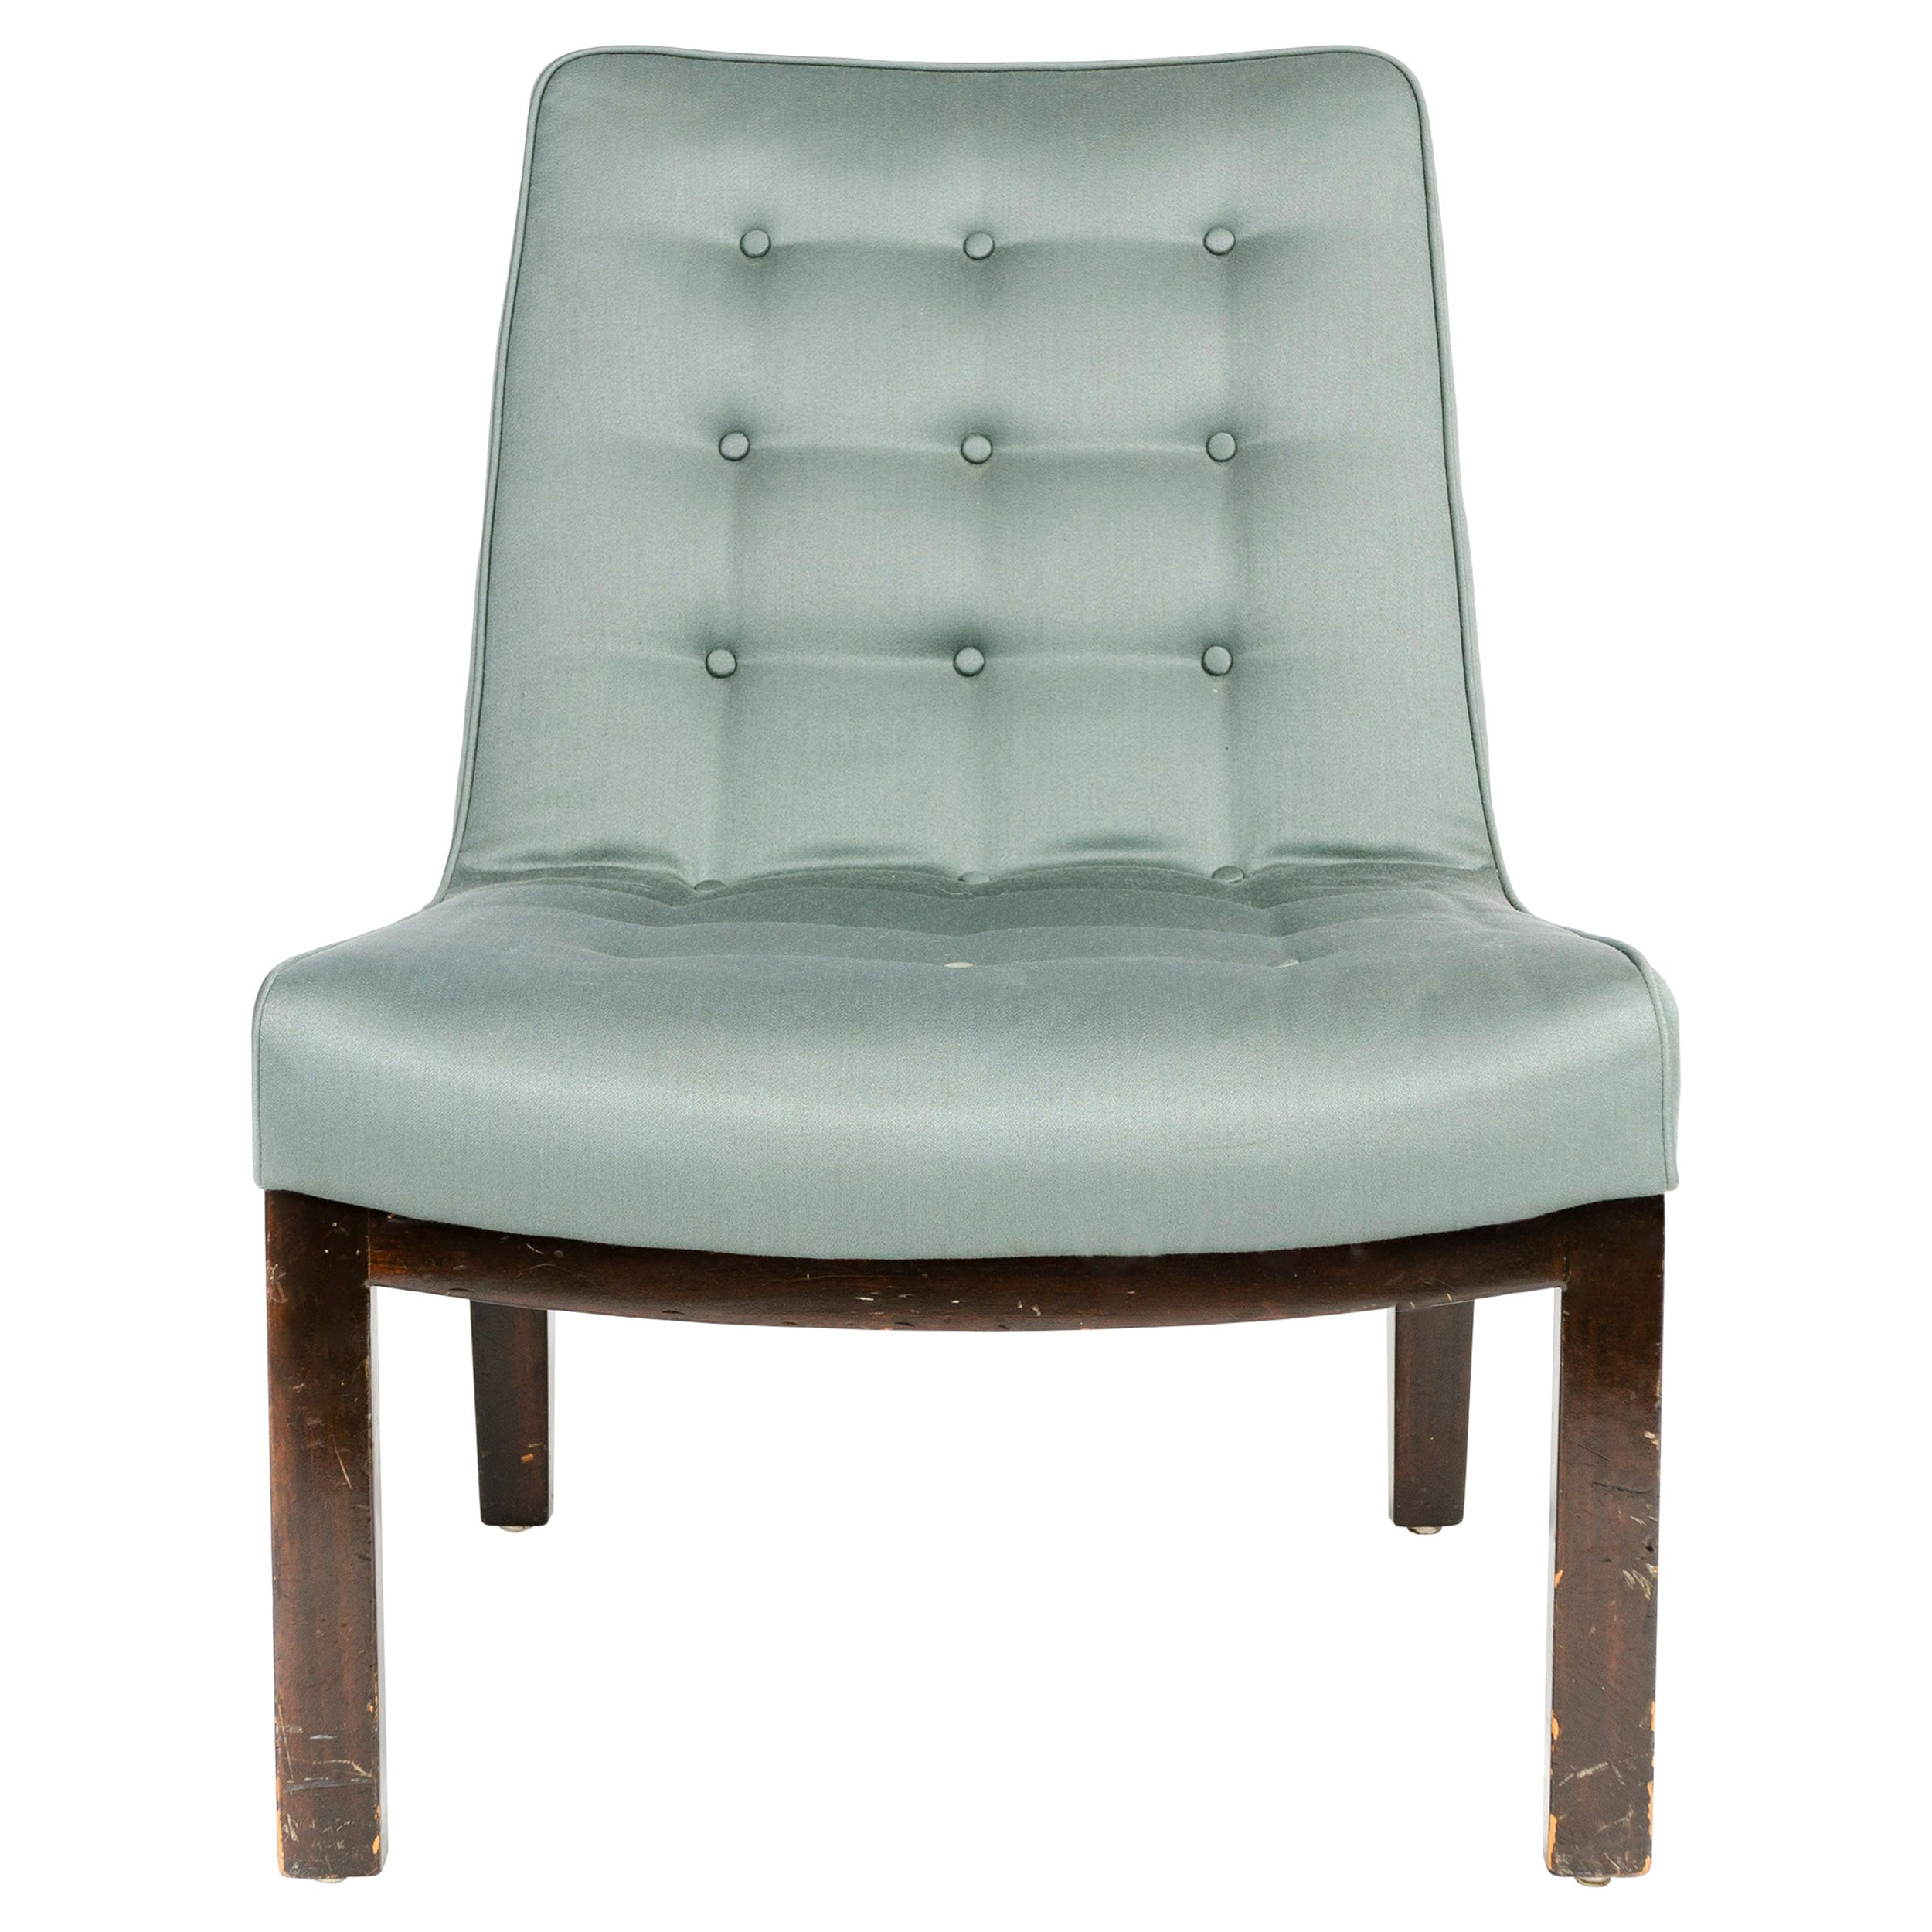 1950s Tufted Lounge Chair by Edward Wormley for Dunbar